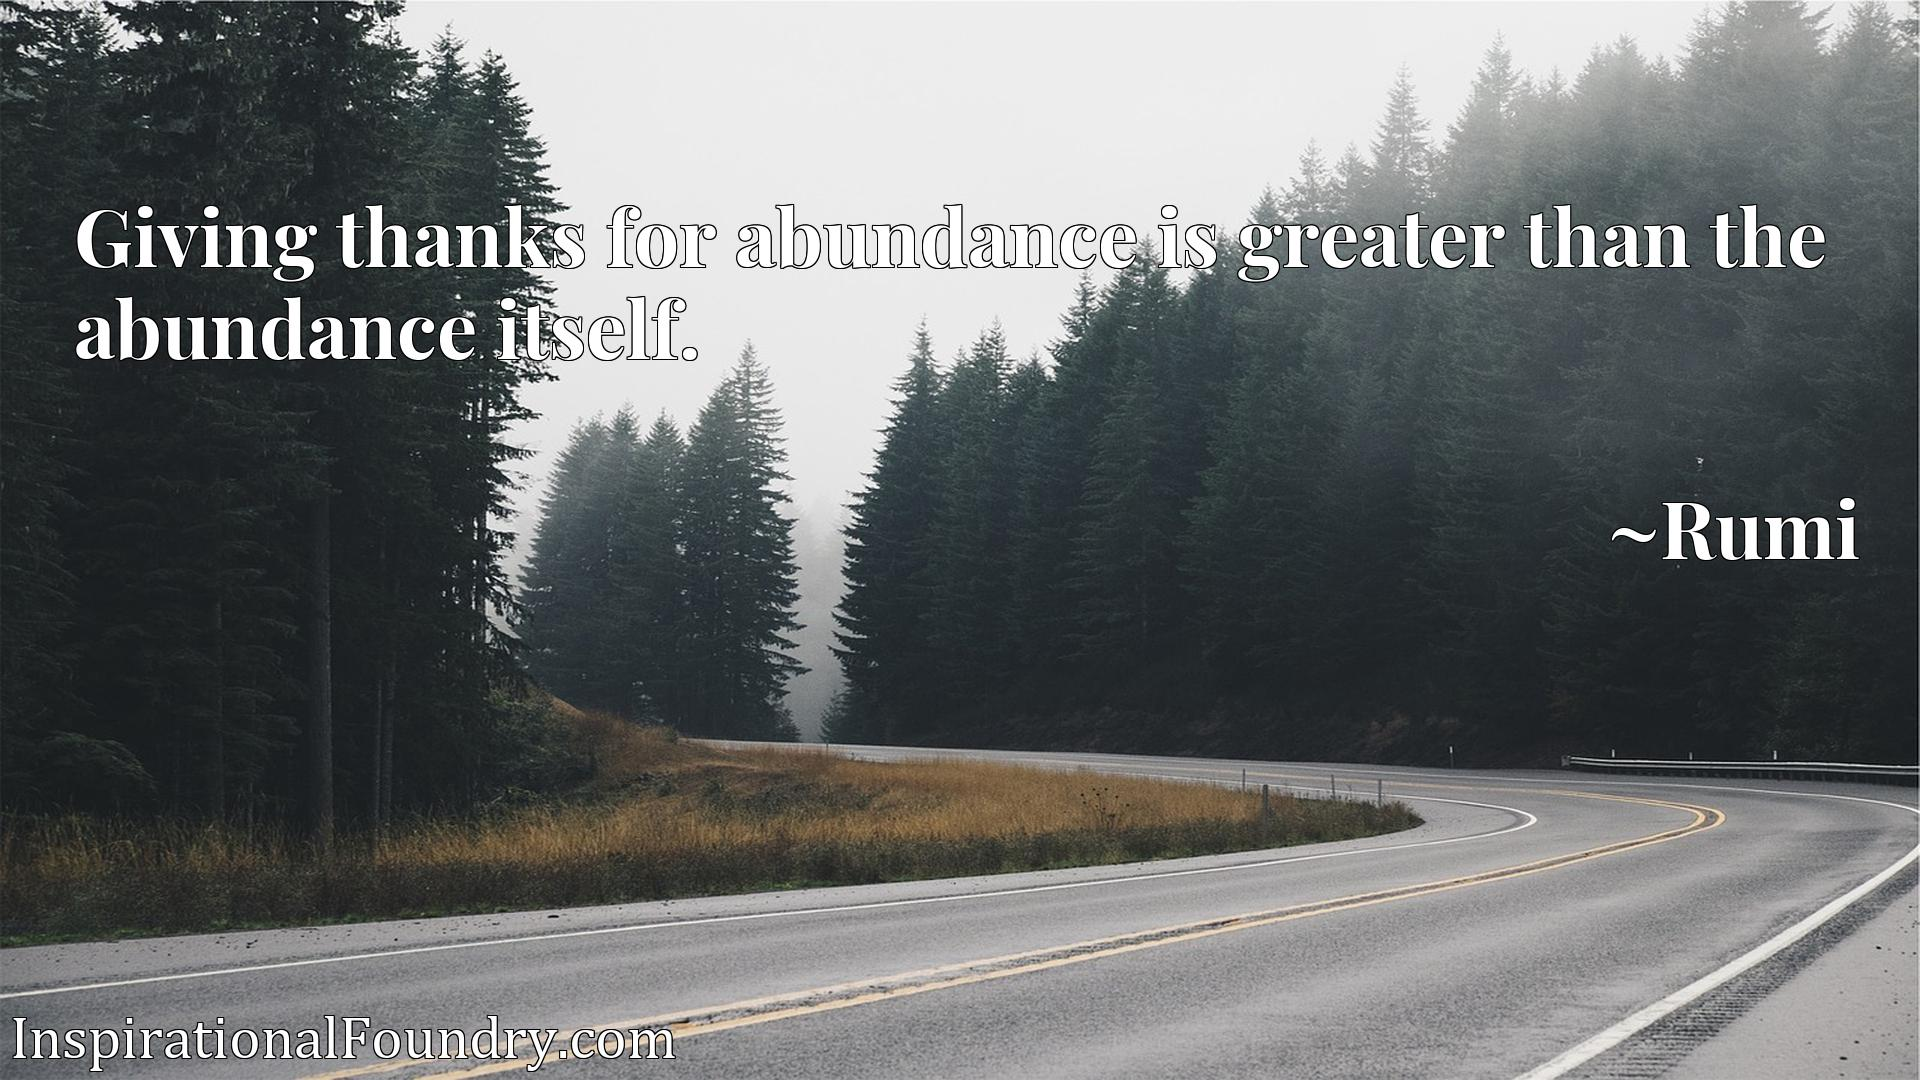 Giving thanks for abundance is greater than the abundance itself.